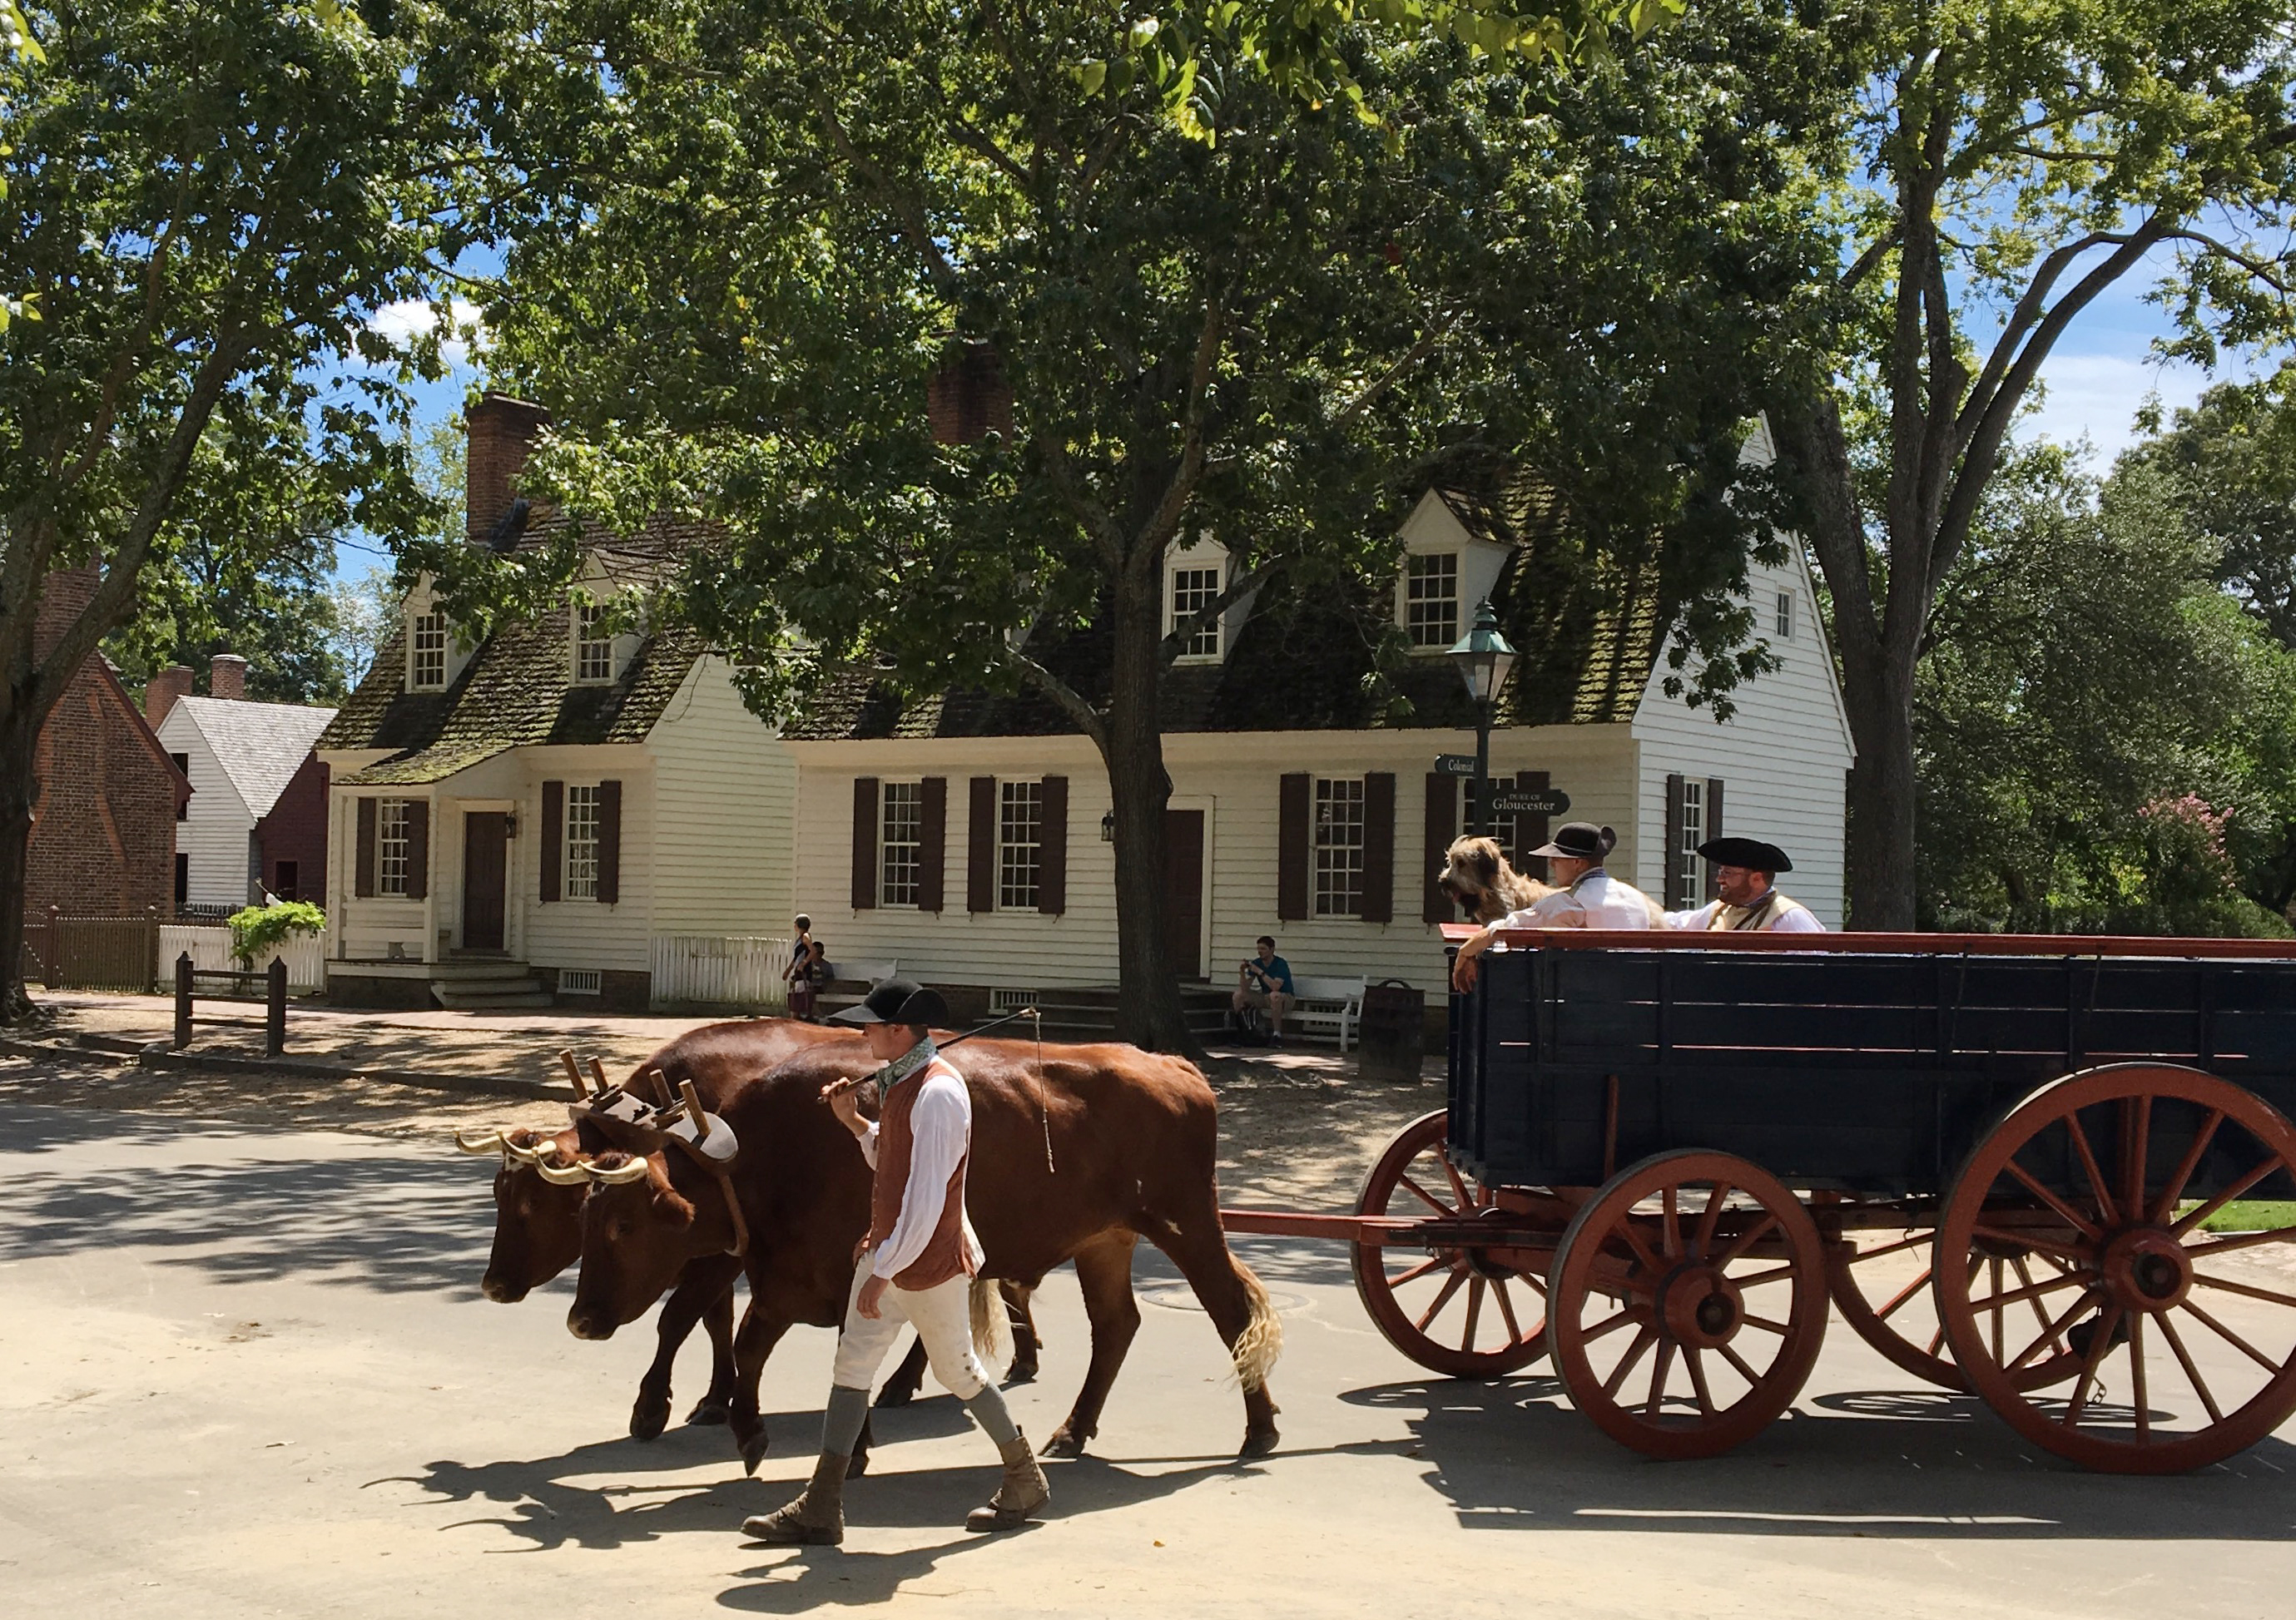 A pooch gets a lift in a wagon along the streets of Colonial Williamsburg. (Kevin Kaiser | Travel Beat Magazine)